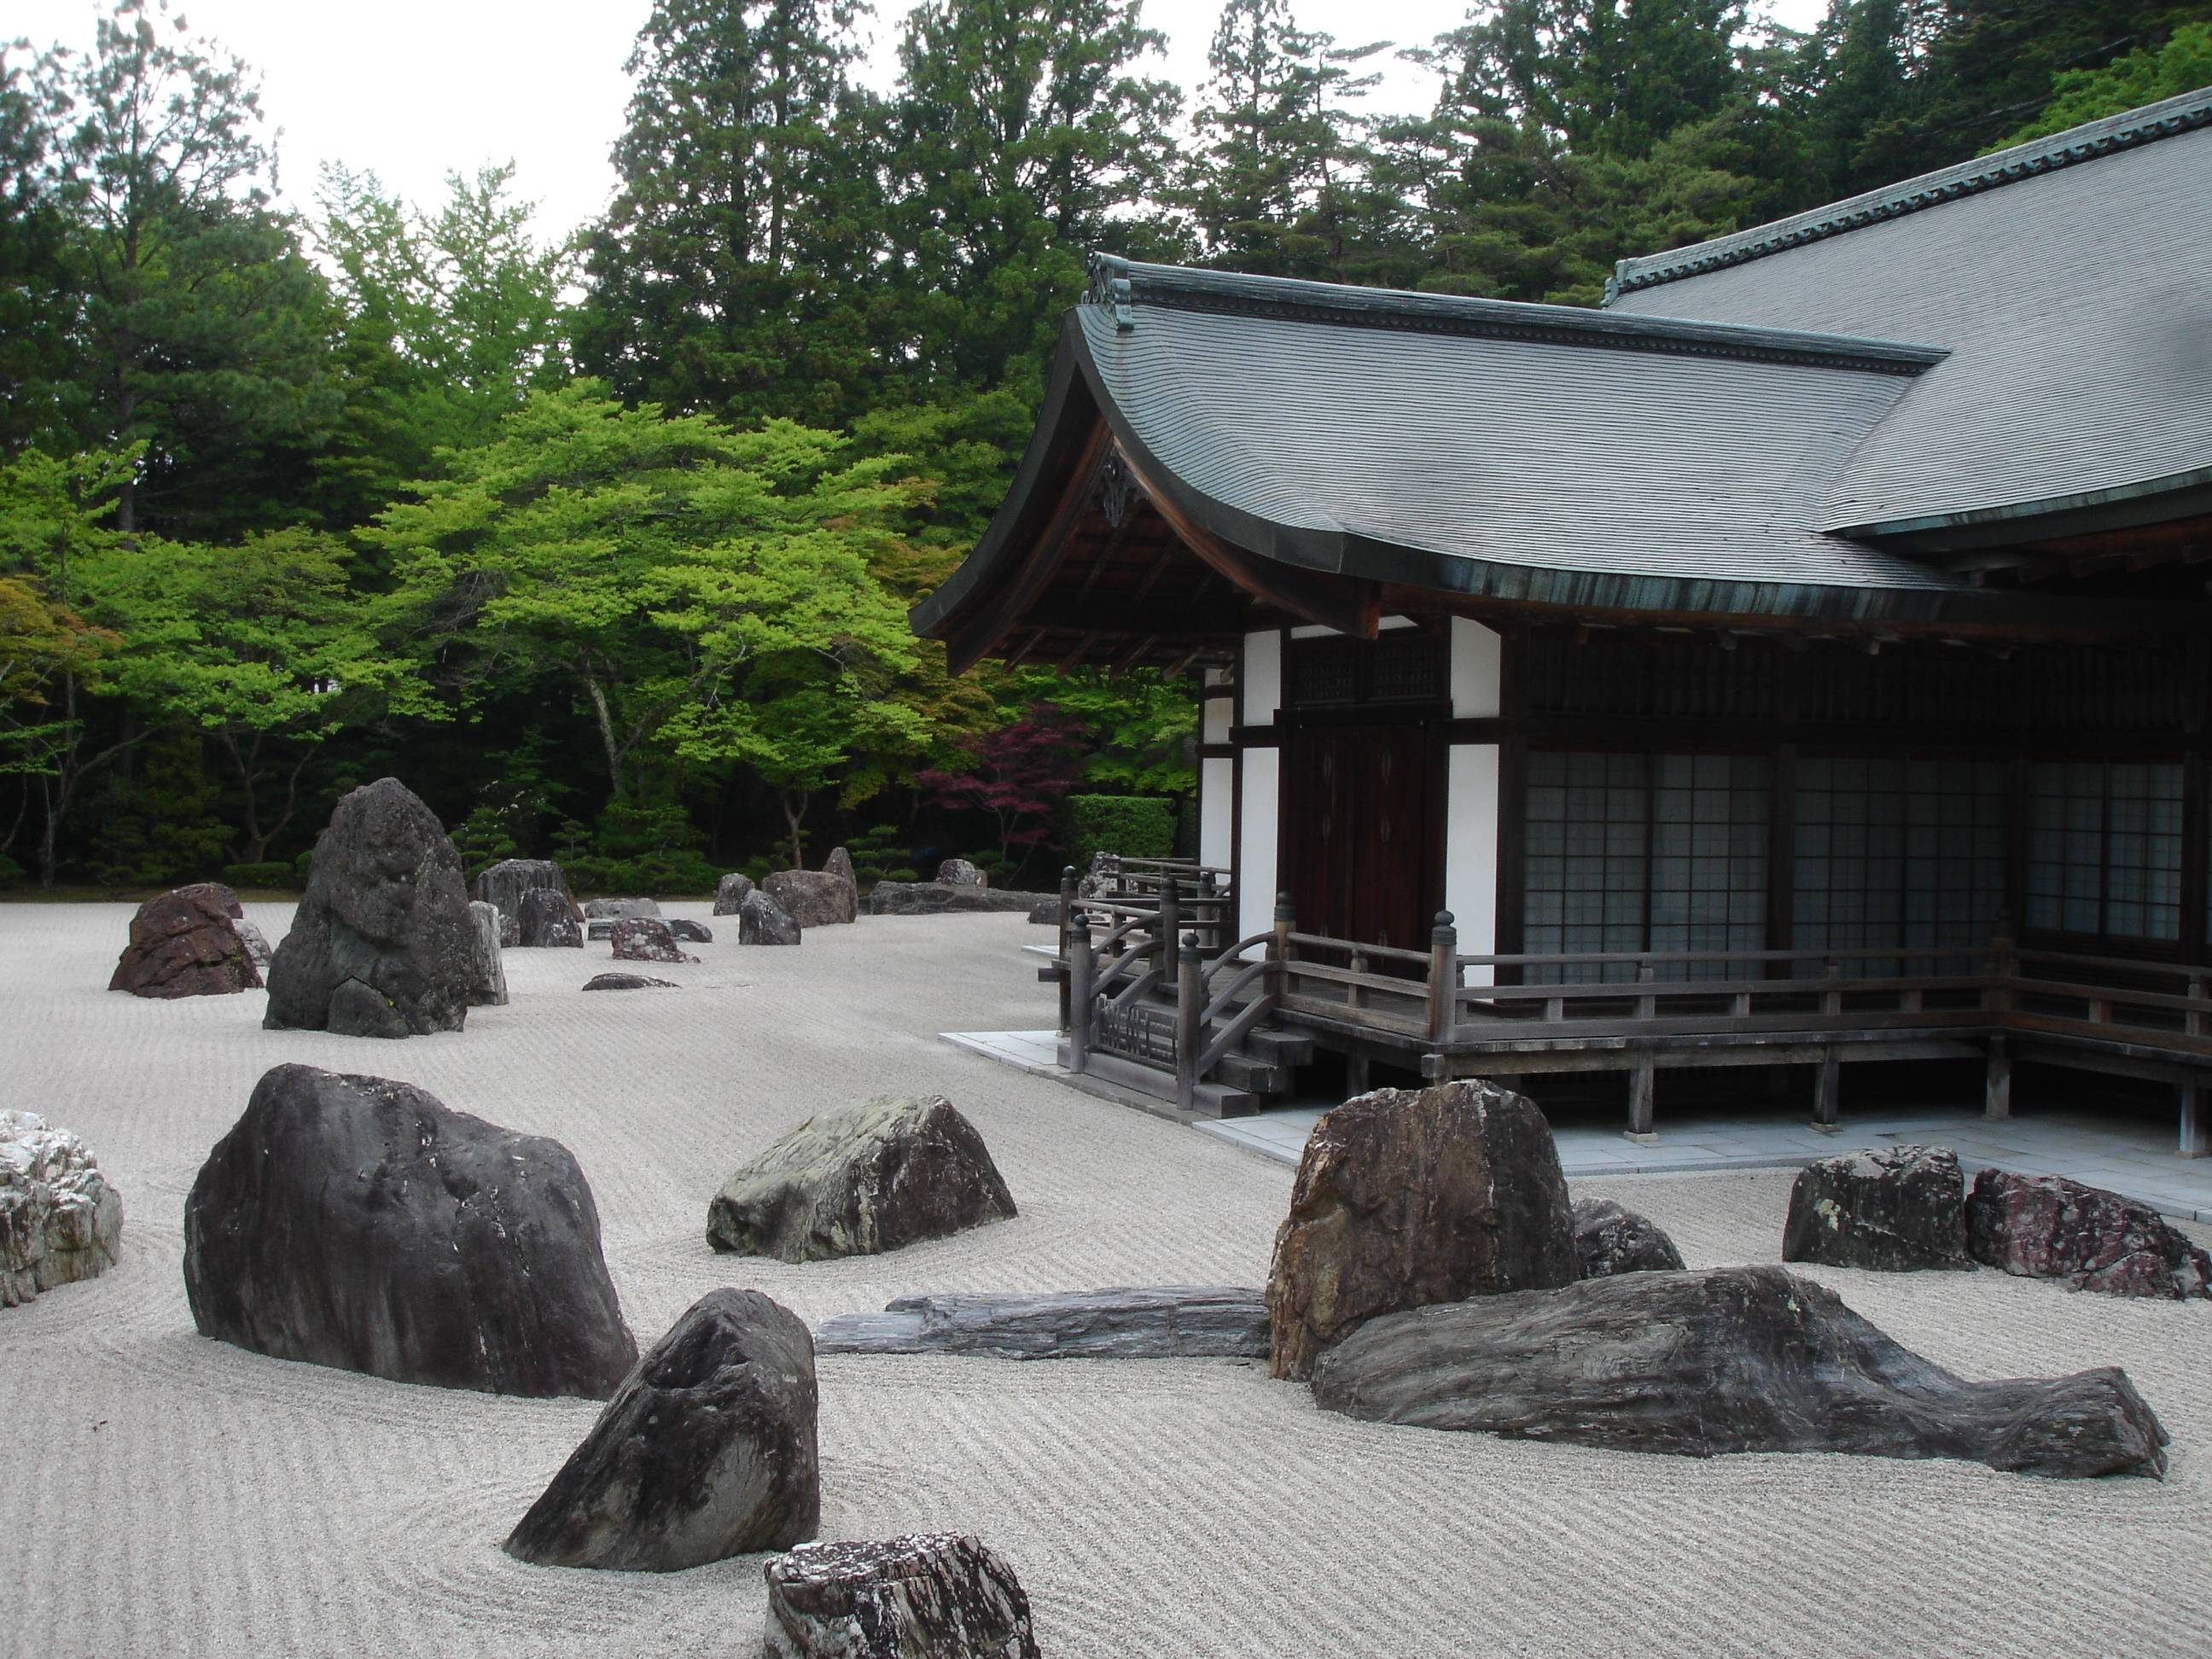 Zen rock garden wallpaper - Zen Garden Wallpaper Hd Freetopwallpaper